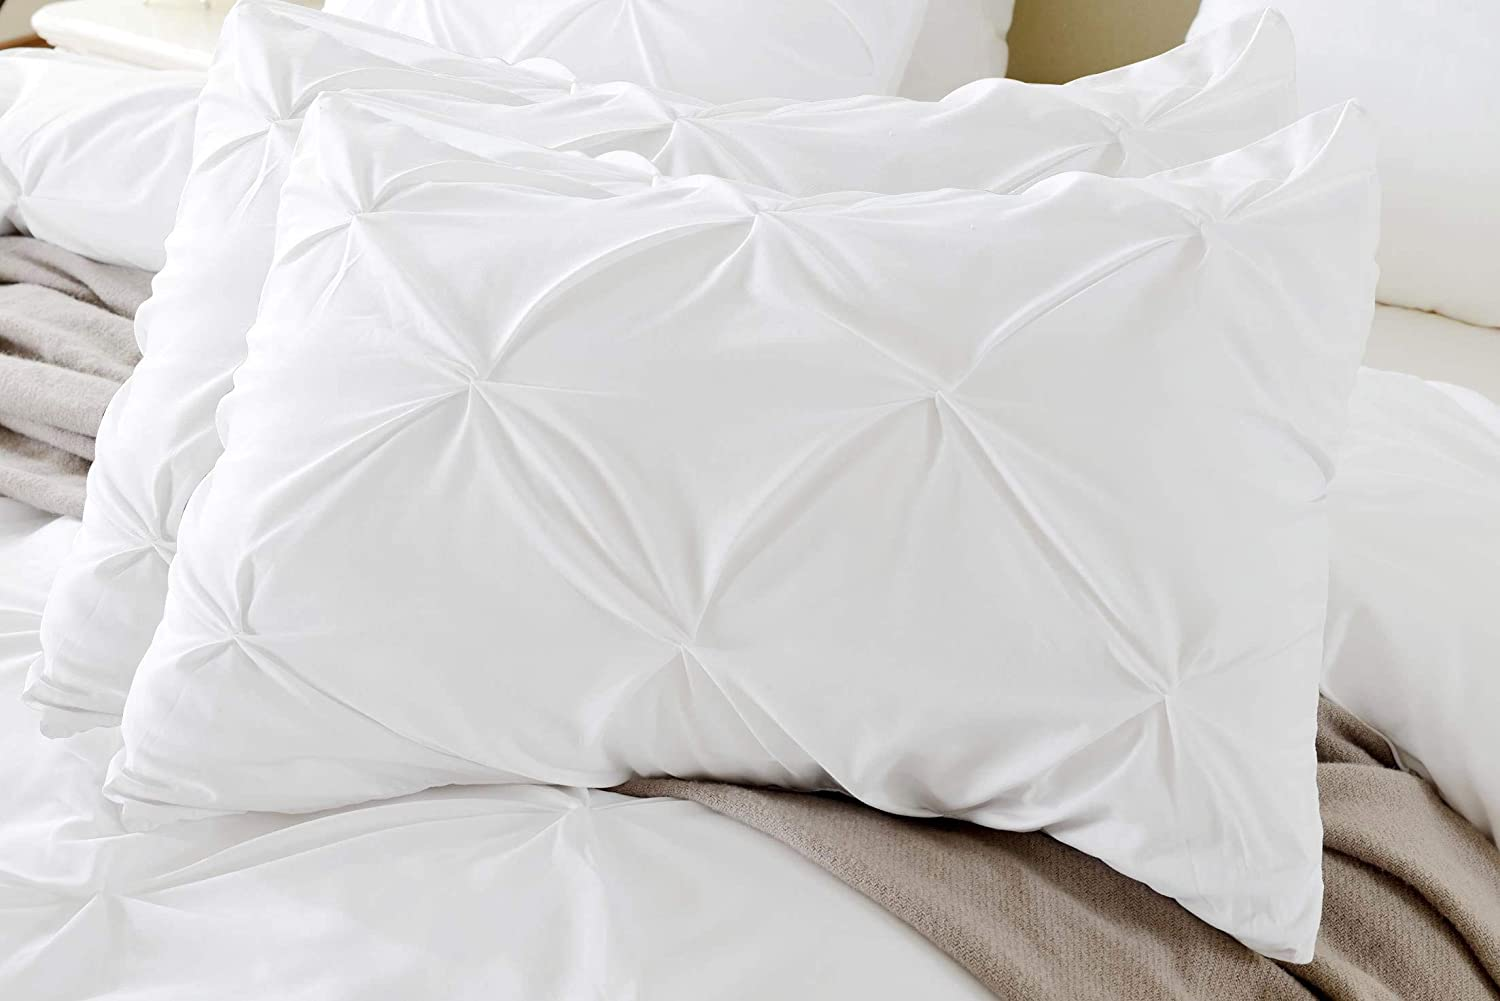 Kotton Culture Set of 2 Pillow Shams Pinch Pleated 100% Egyptian Cotton 600 Thread Count Super Soft Decorative Hotel Class Bedding (Queen/Full, White)